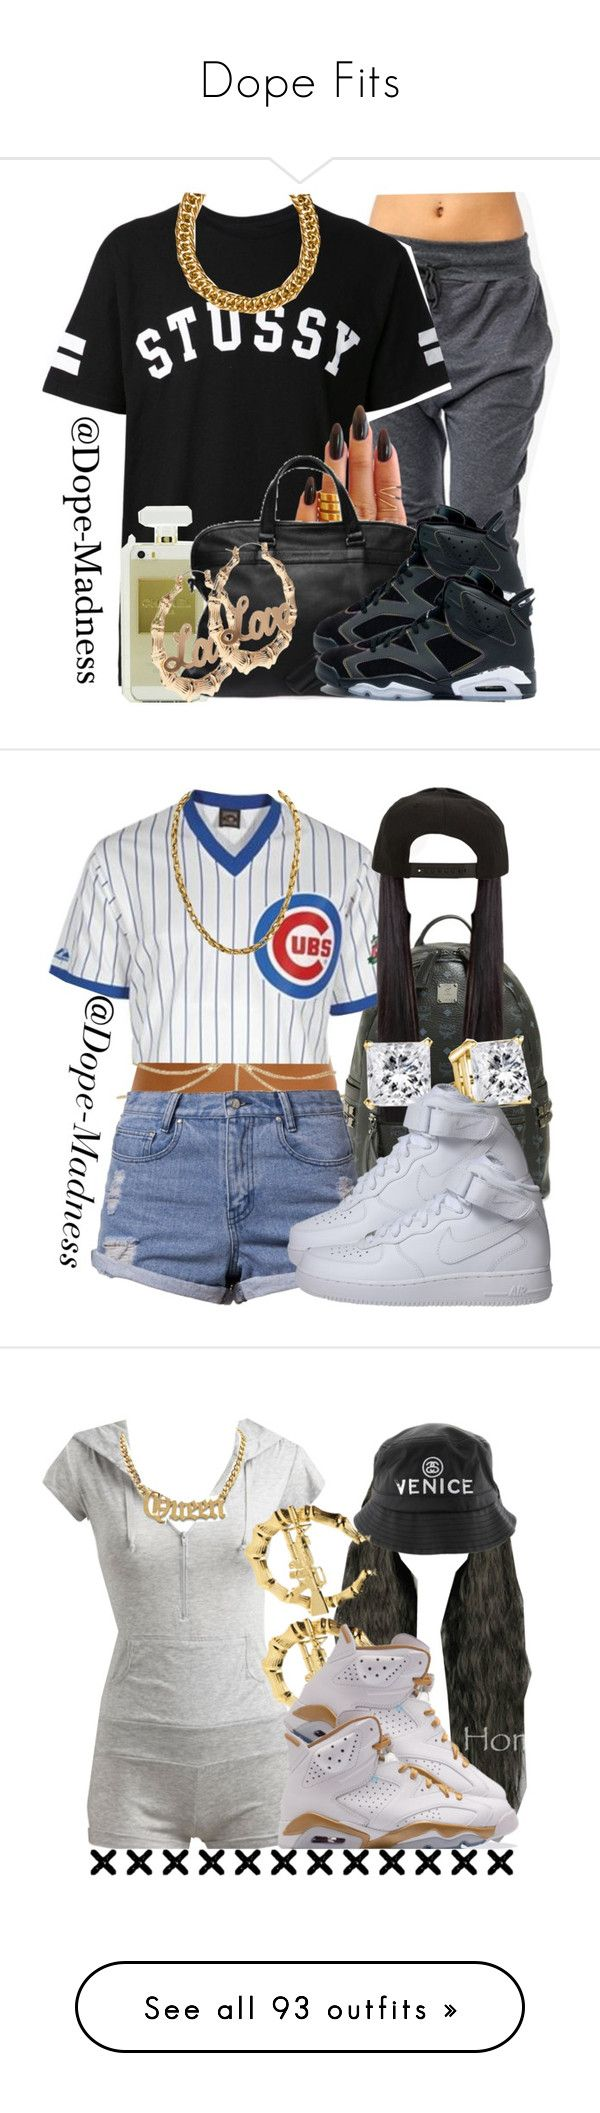 """Dope Fits"" by gbaby707 ❤ liked on Polyvore featuring Stussy, KEEP ME, CC, H&M, Retrò, MCM, ASOS, Somedays Lovin, NIKE and Roark"